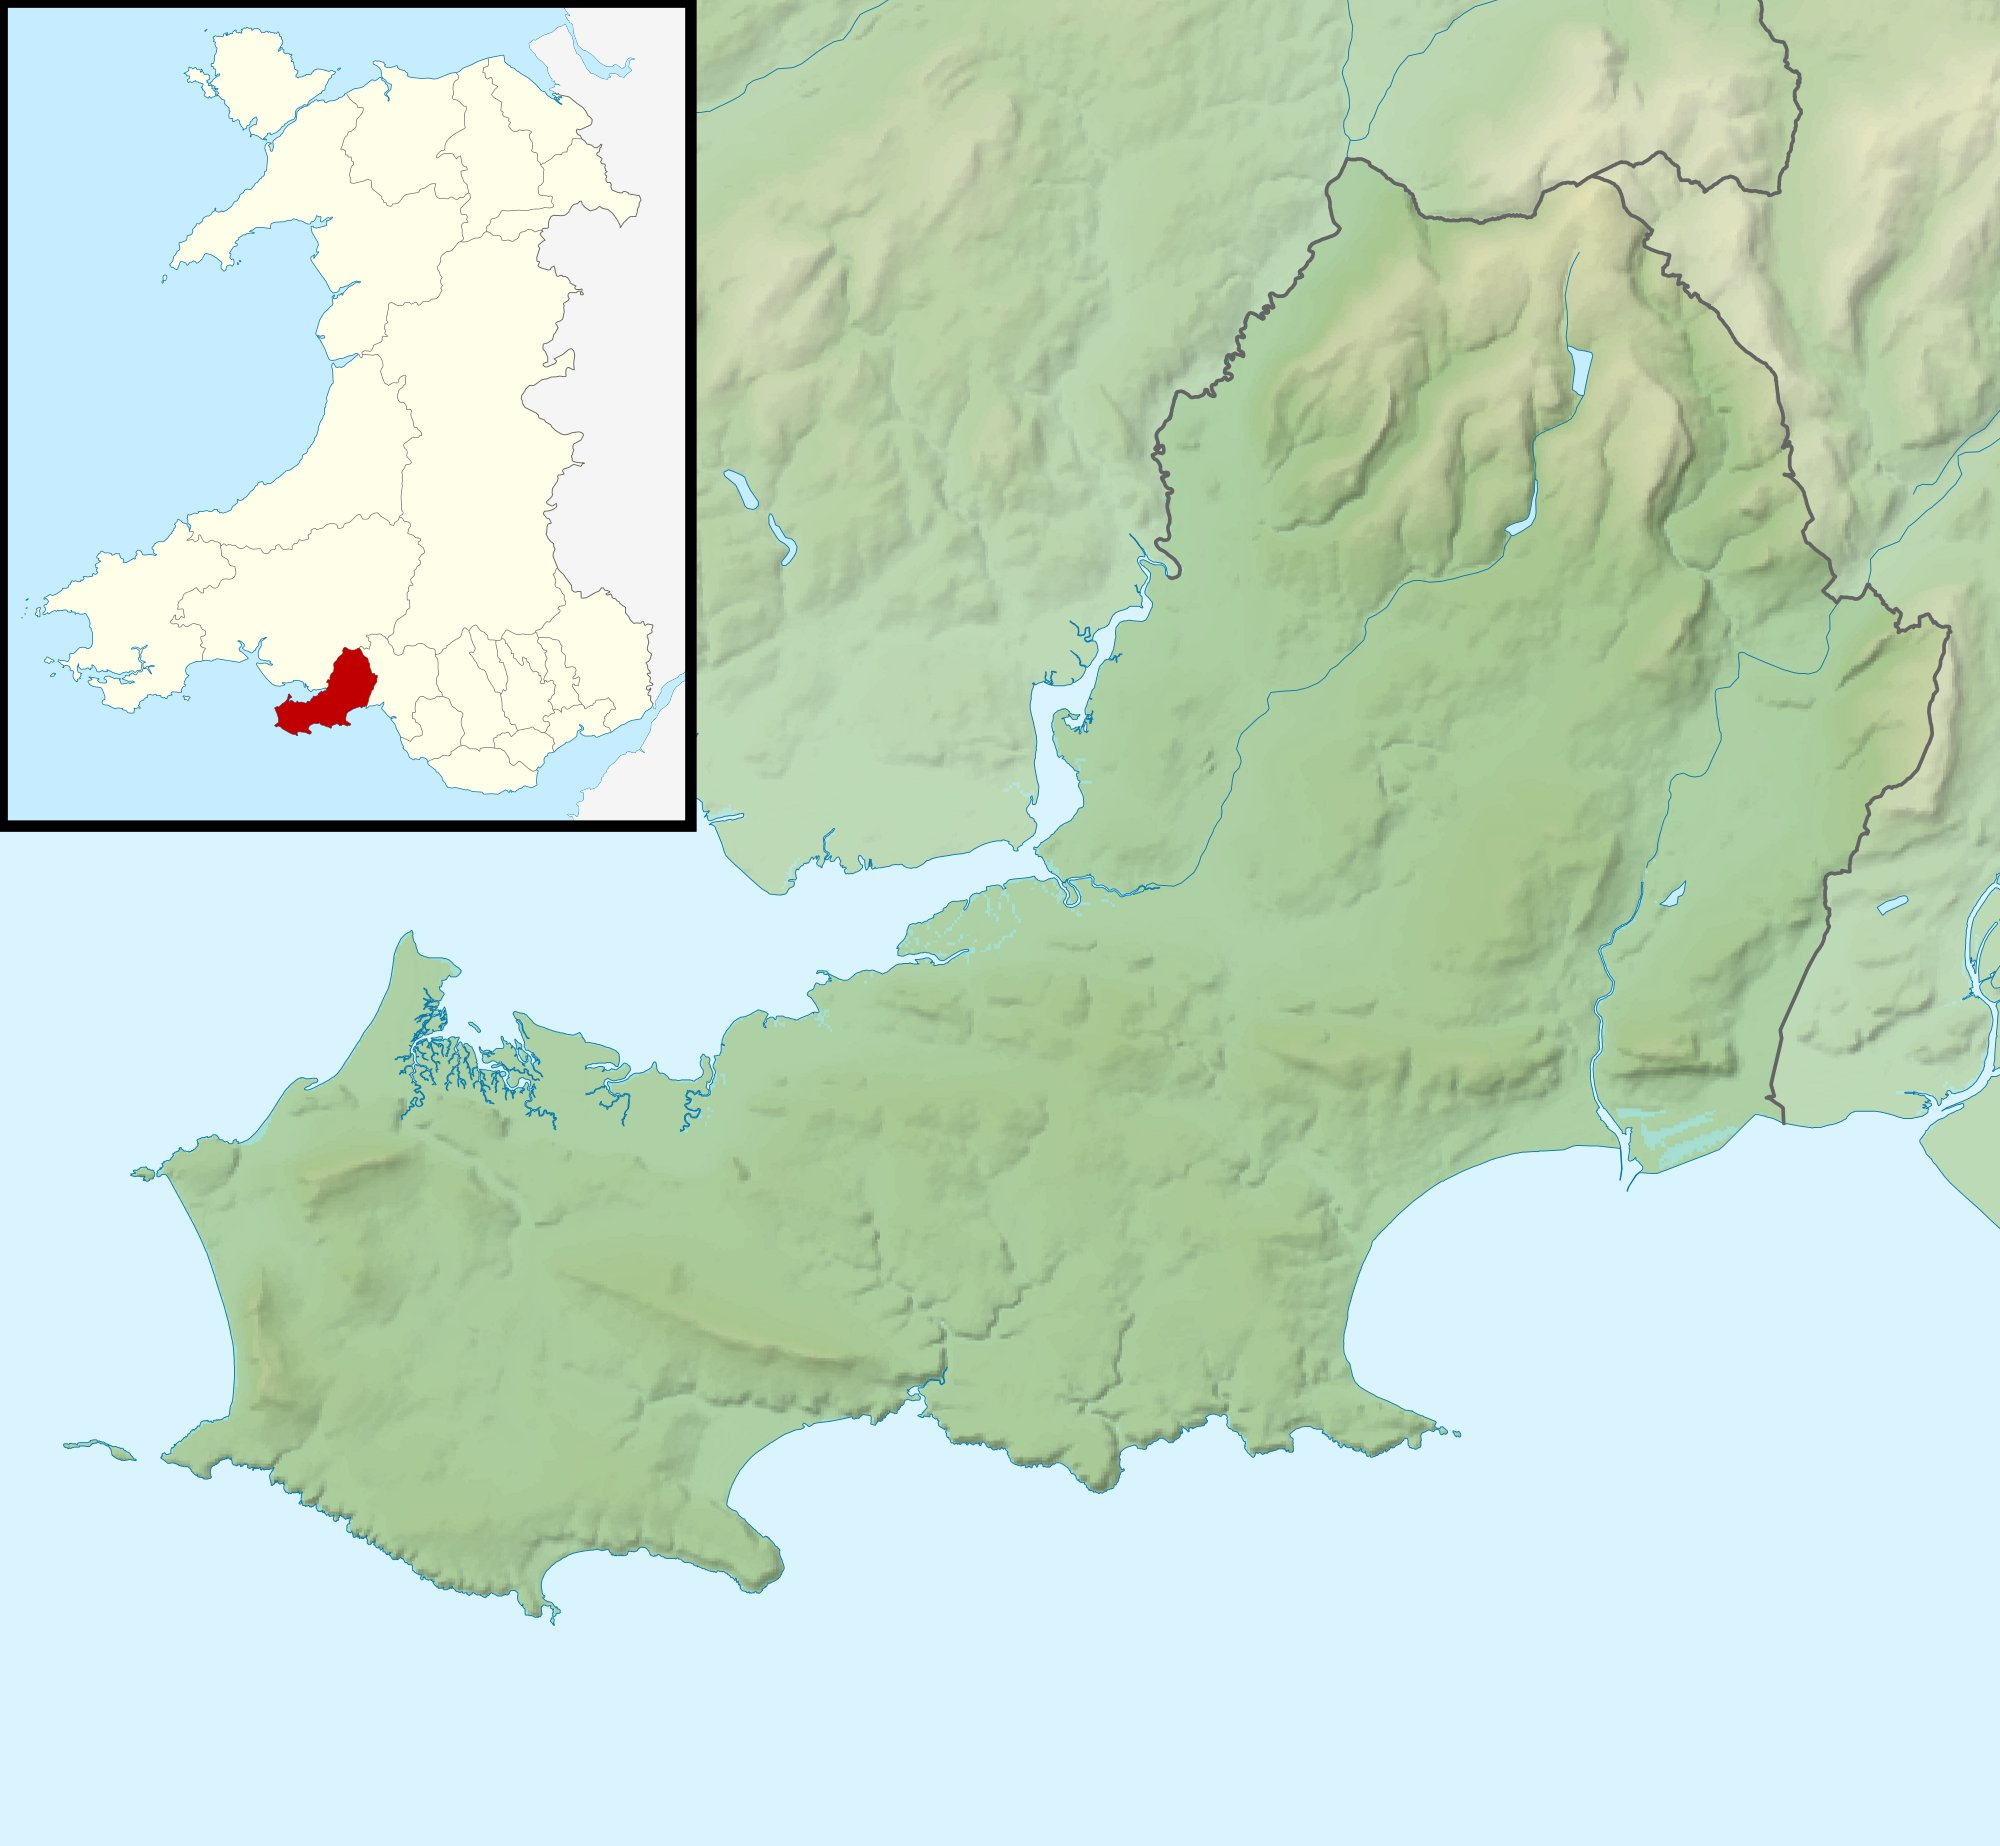 FileSwansea UK relief location mapjpg Wikimedia Commons